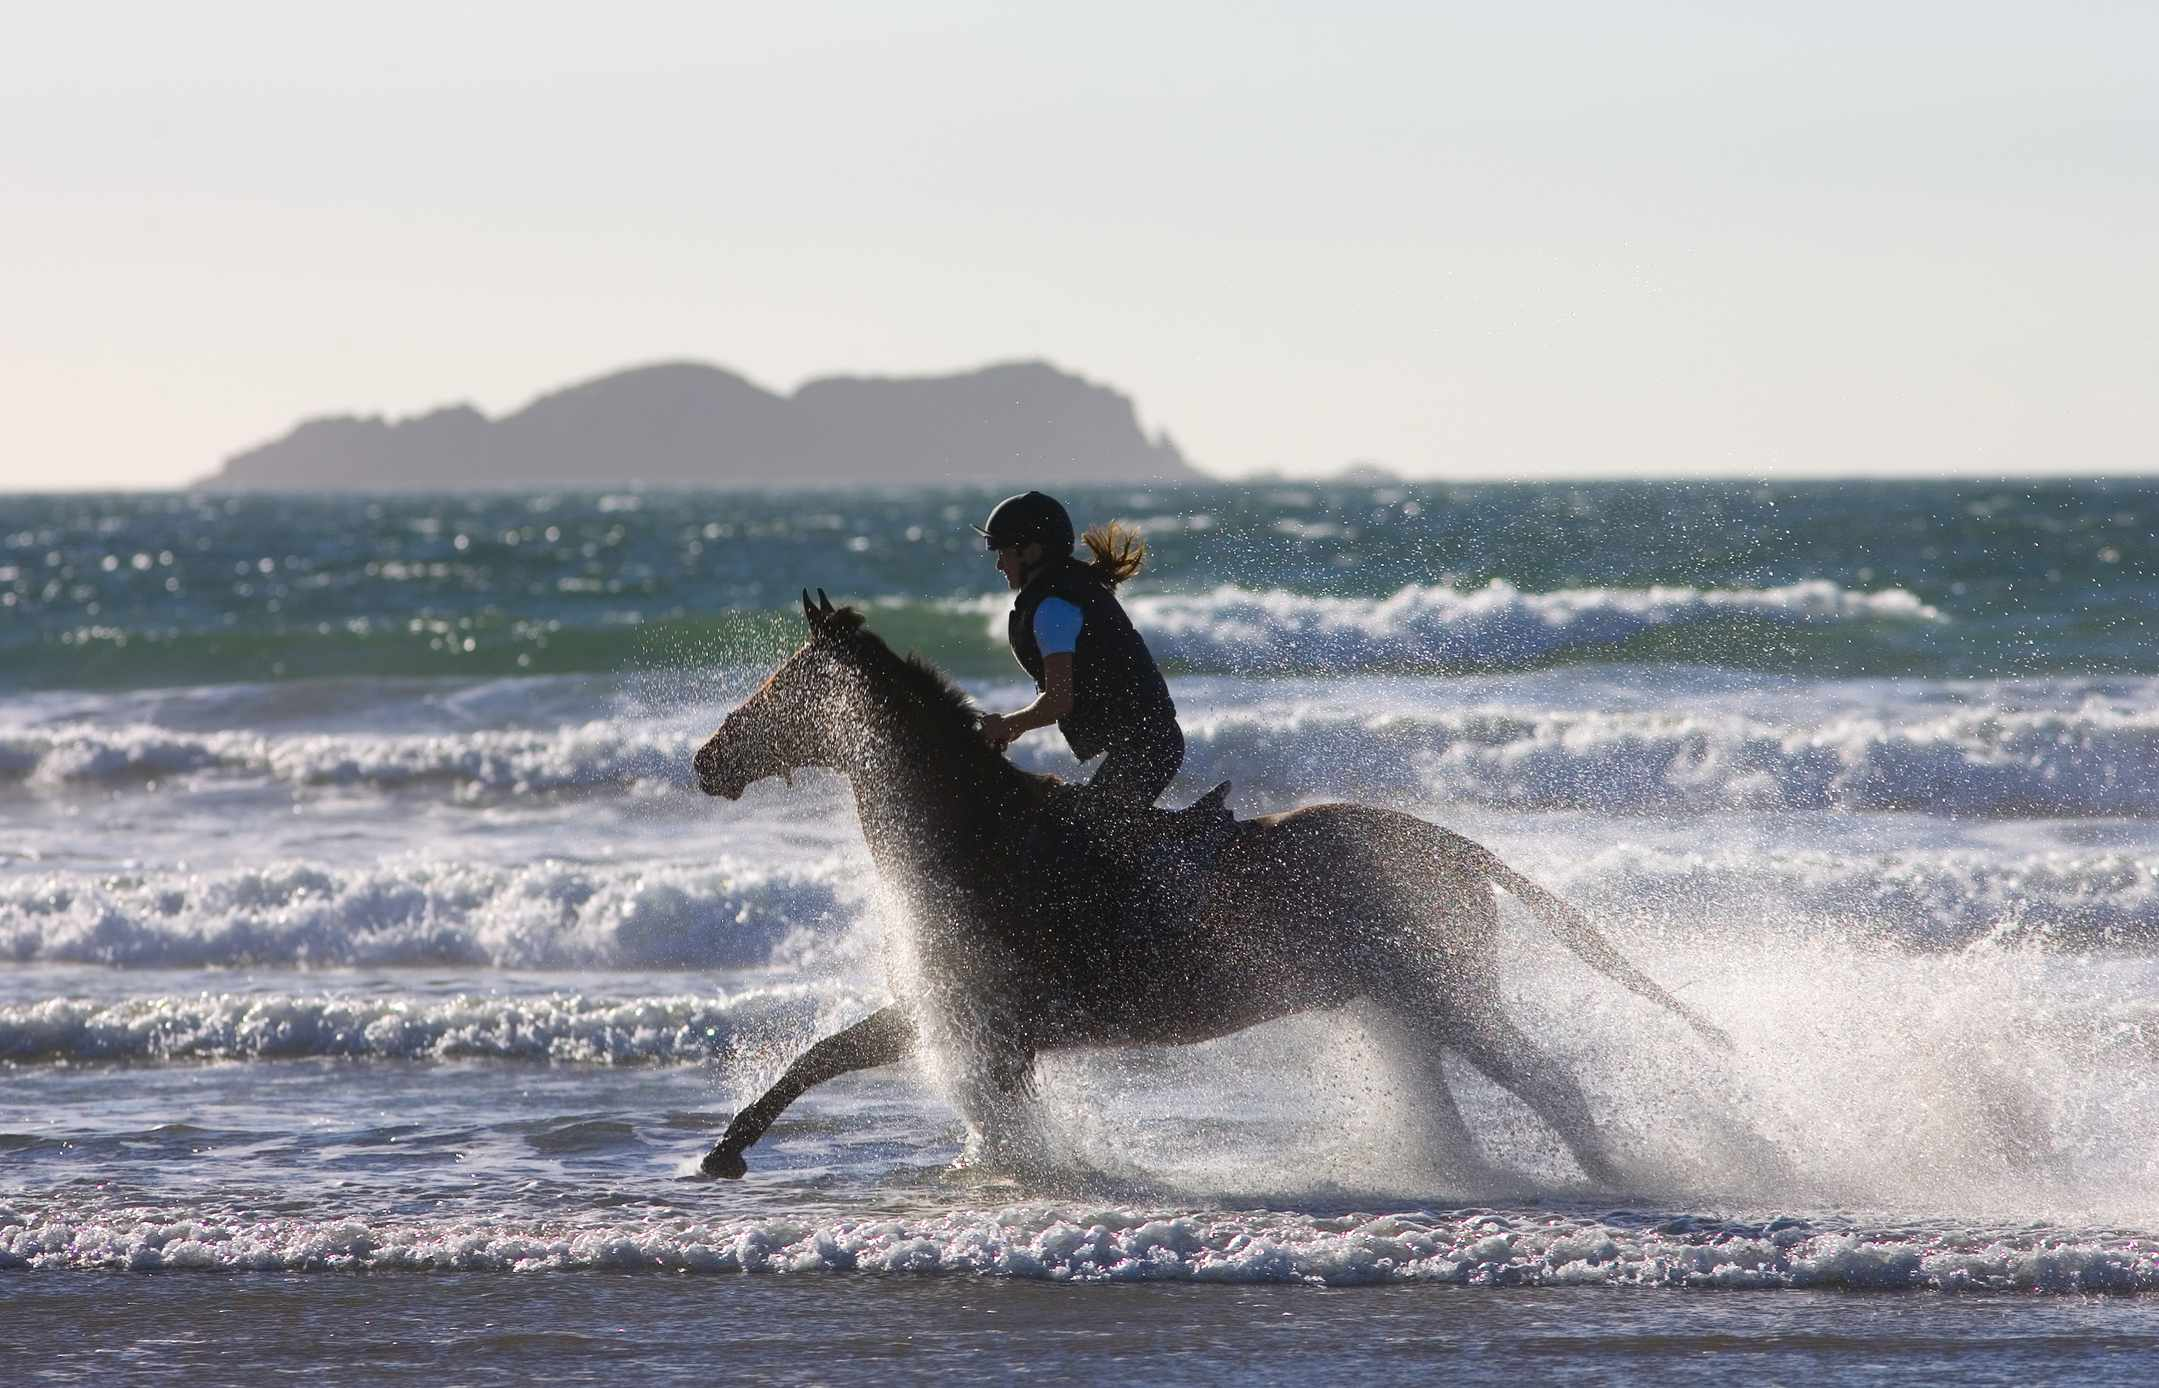 Horse riding on beach, Wales, UK